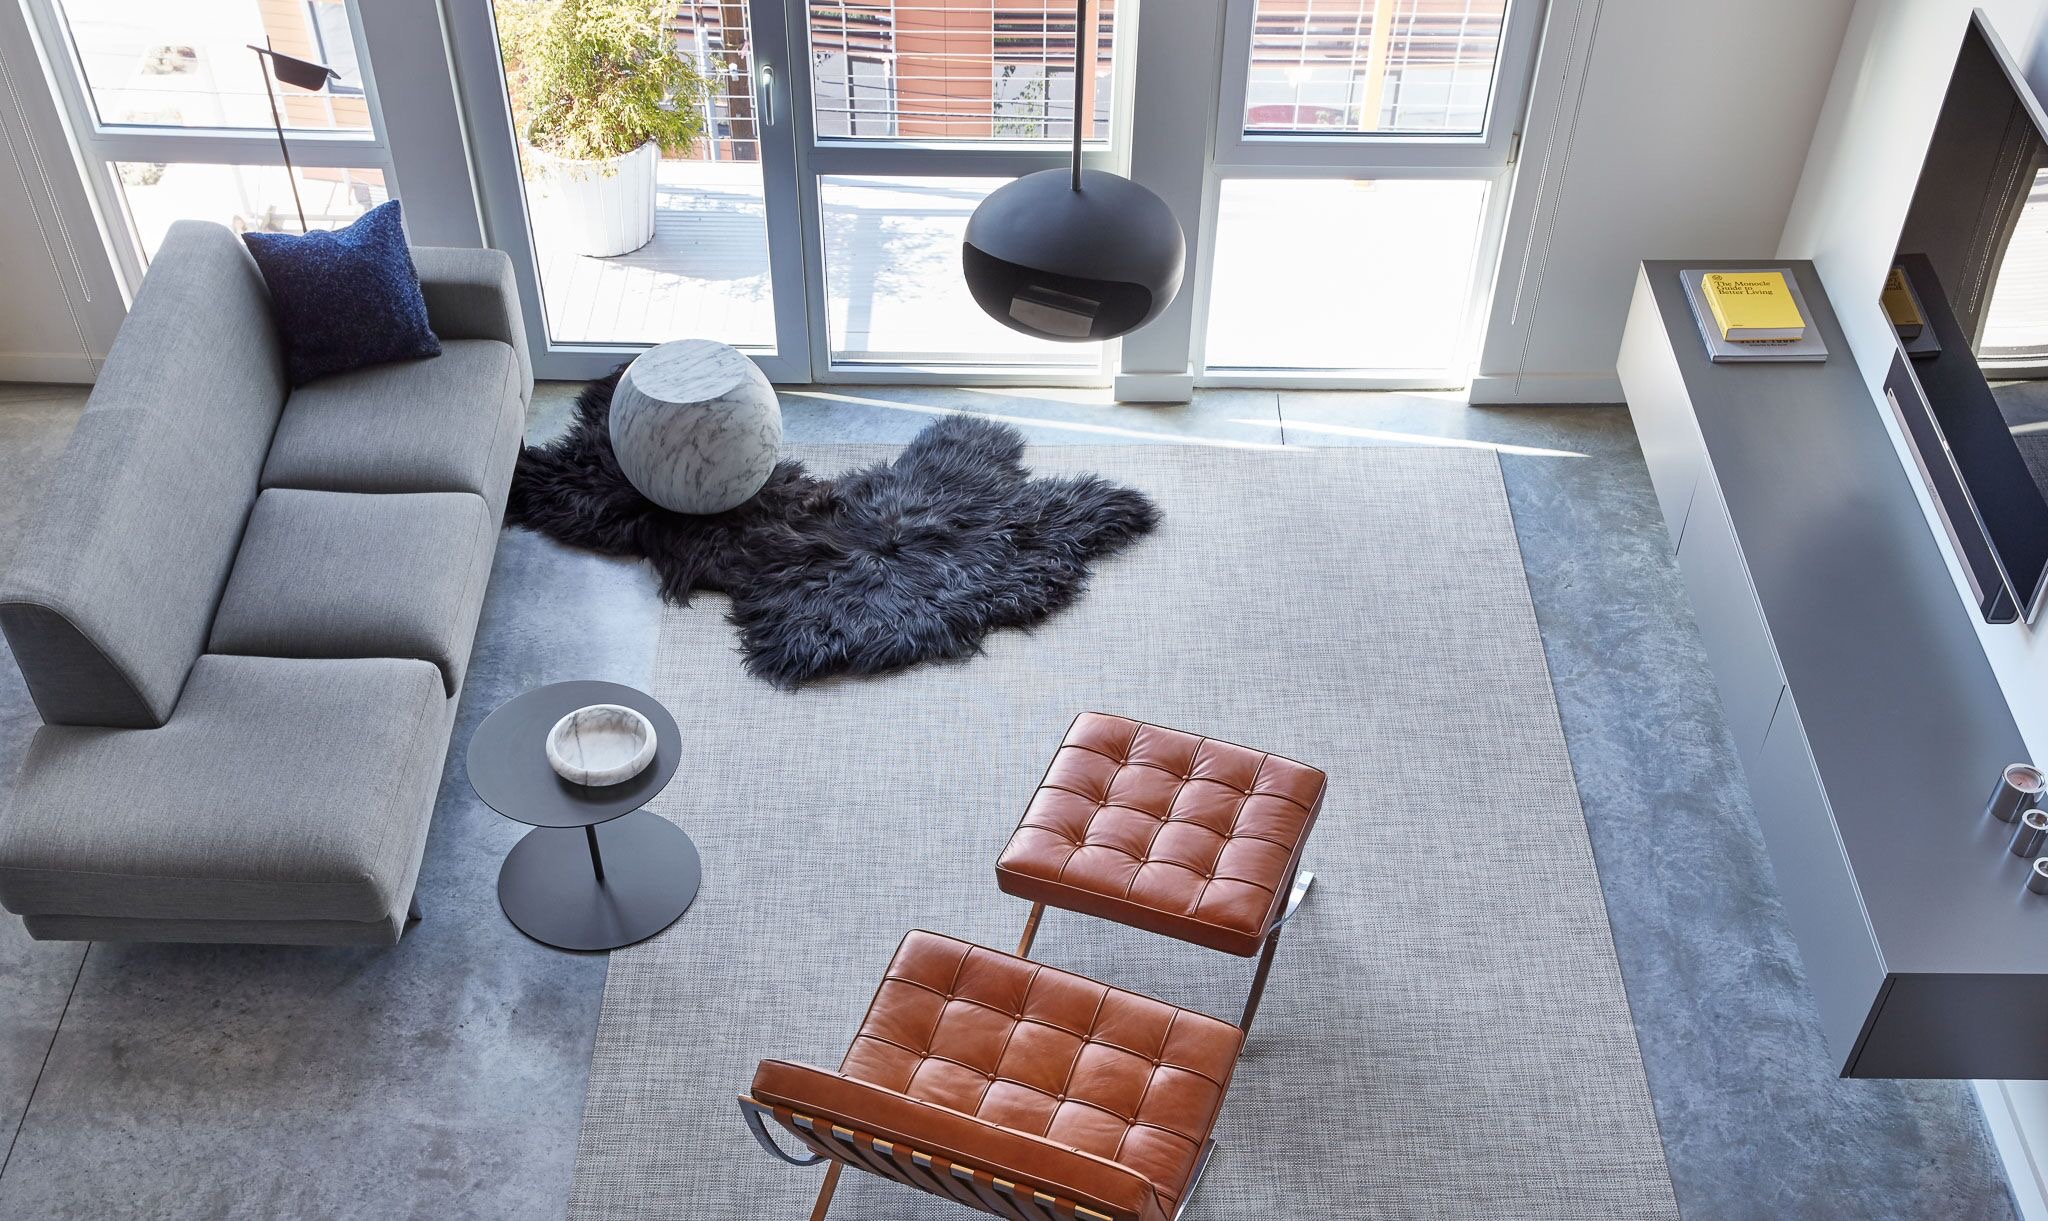 jstudio slu living room2.jpg